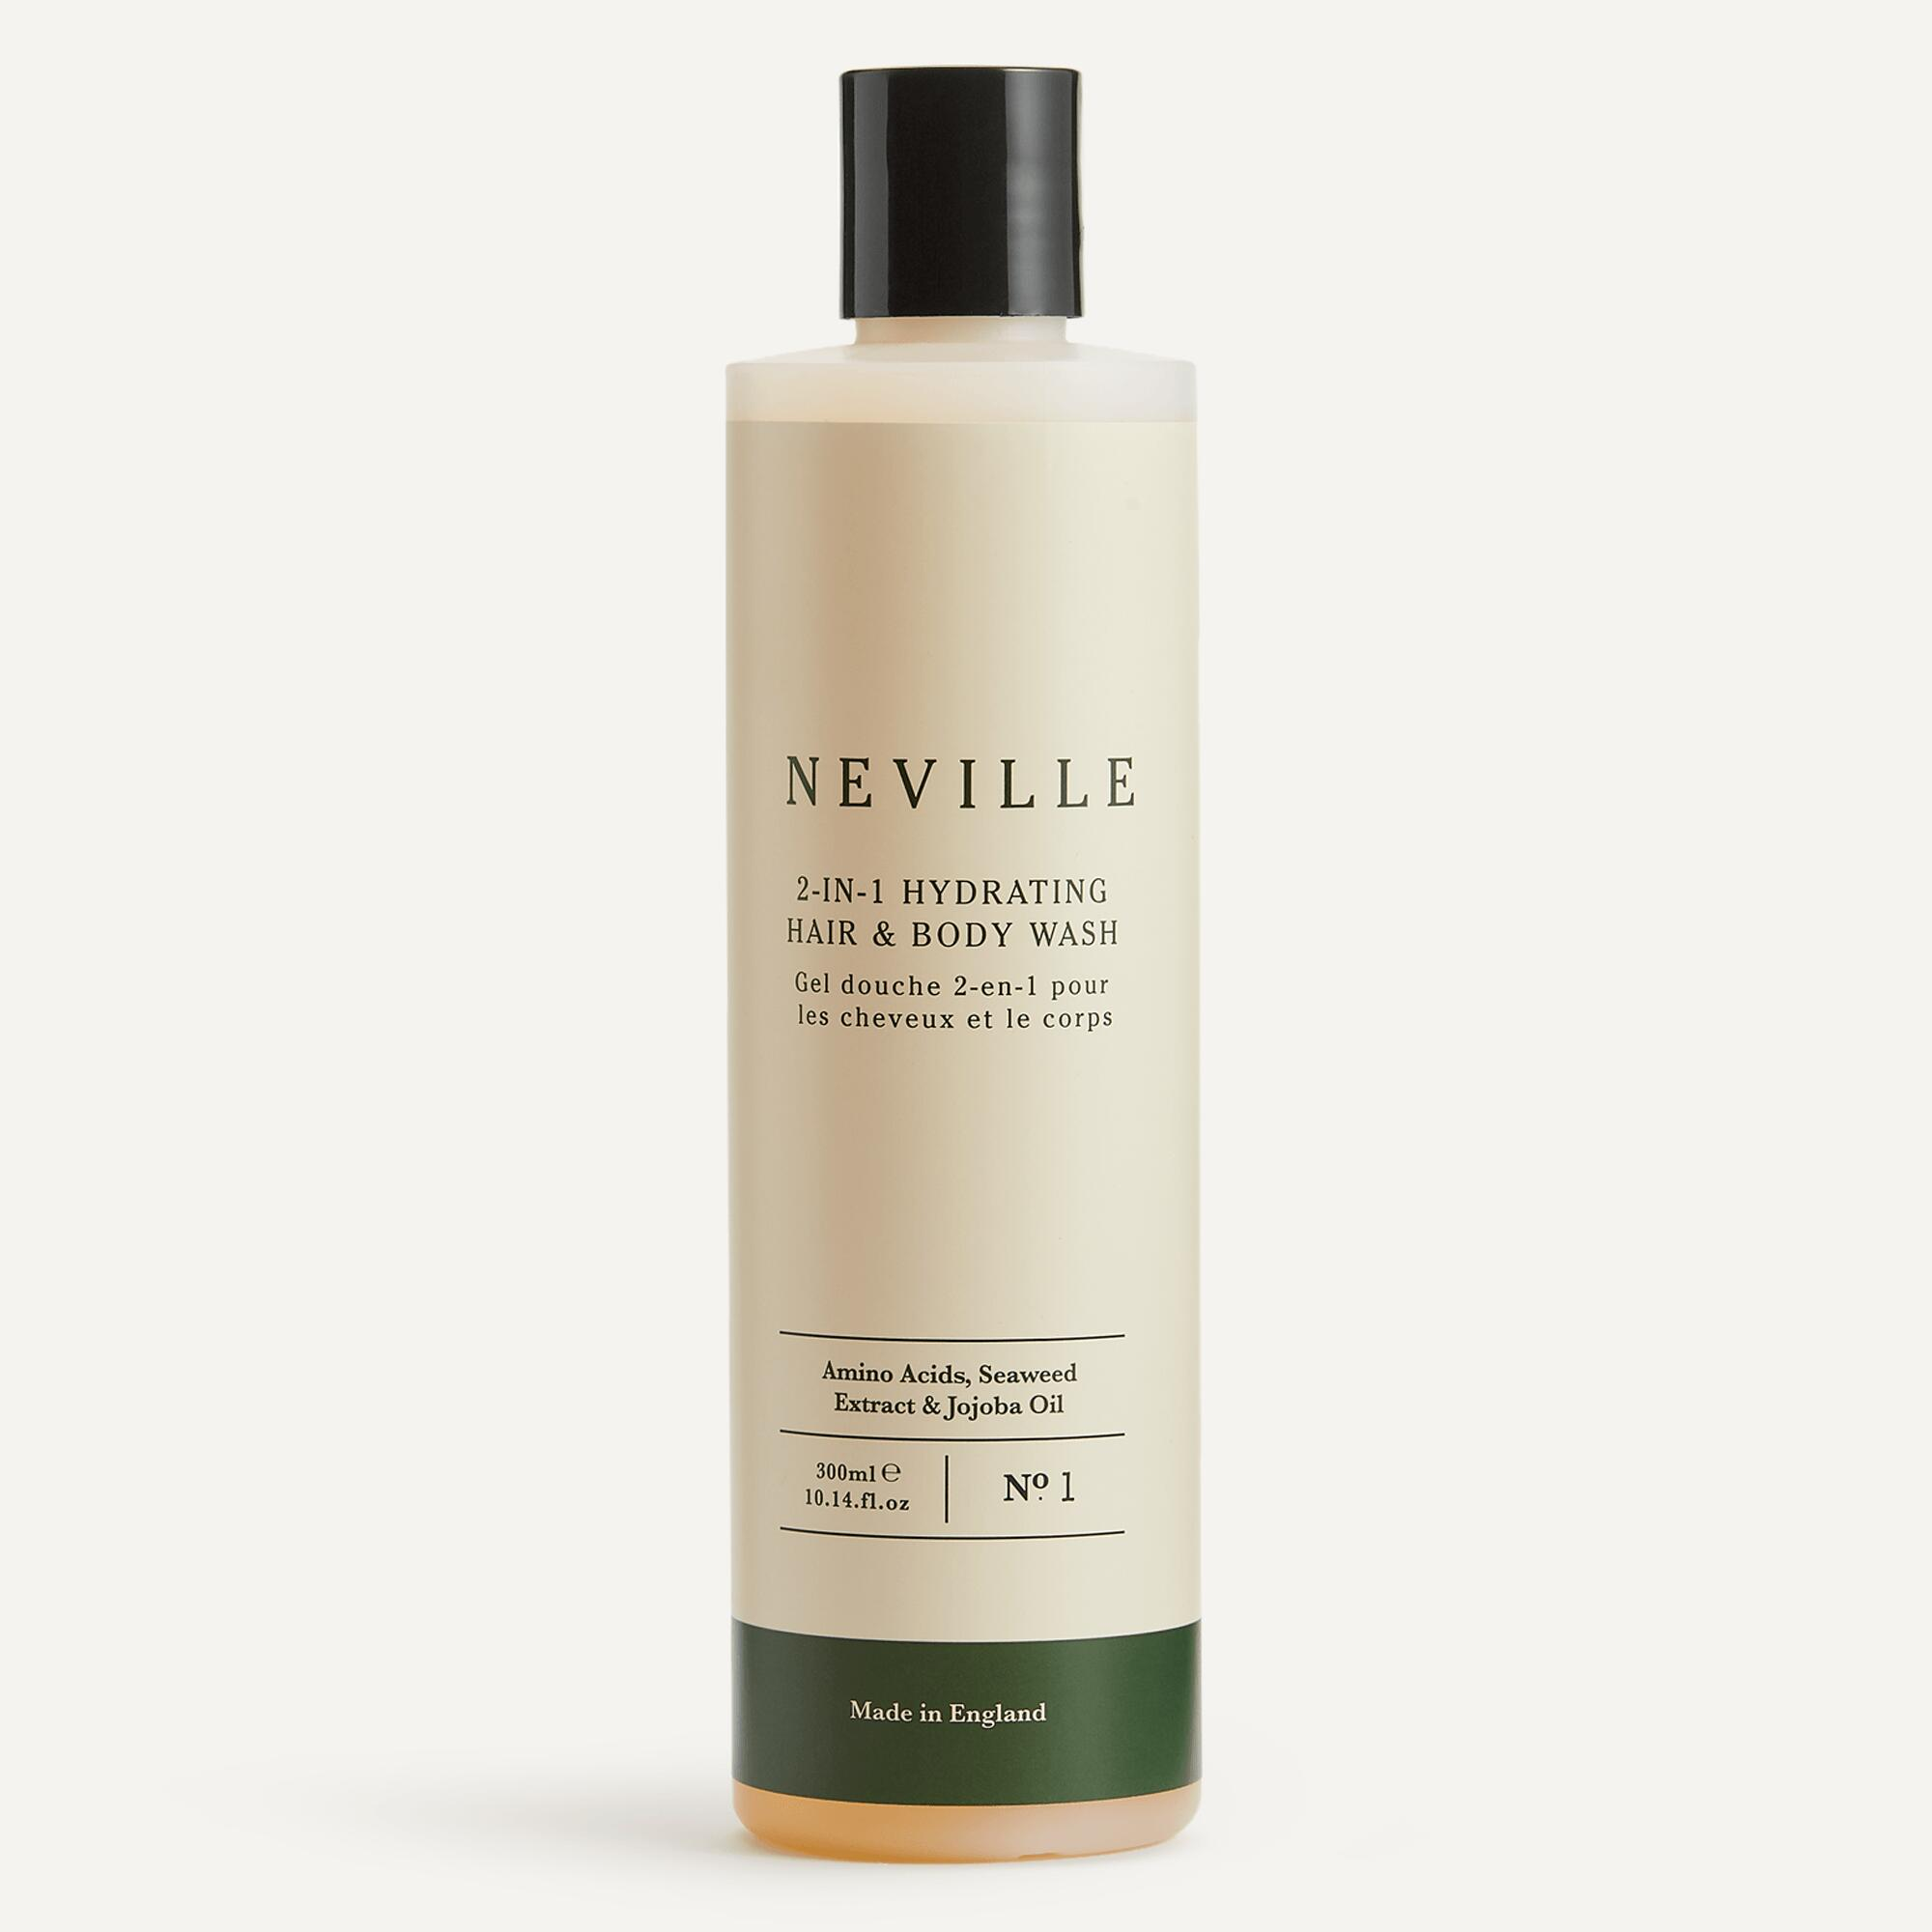 NEVILLE BY COWSHED 2 IN 1 HYDRATING HAIR & BODY WASH